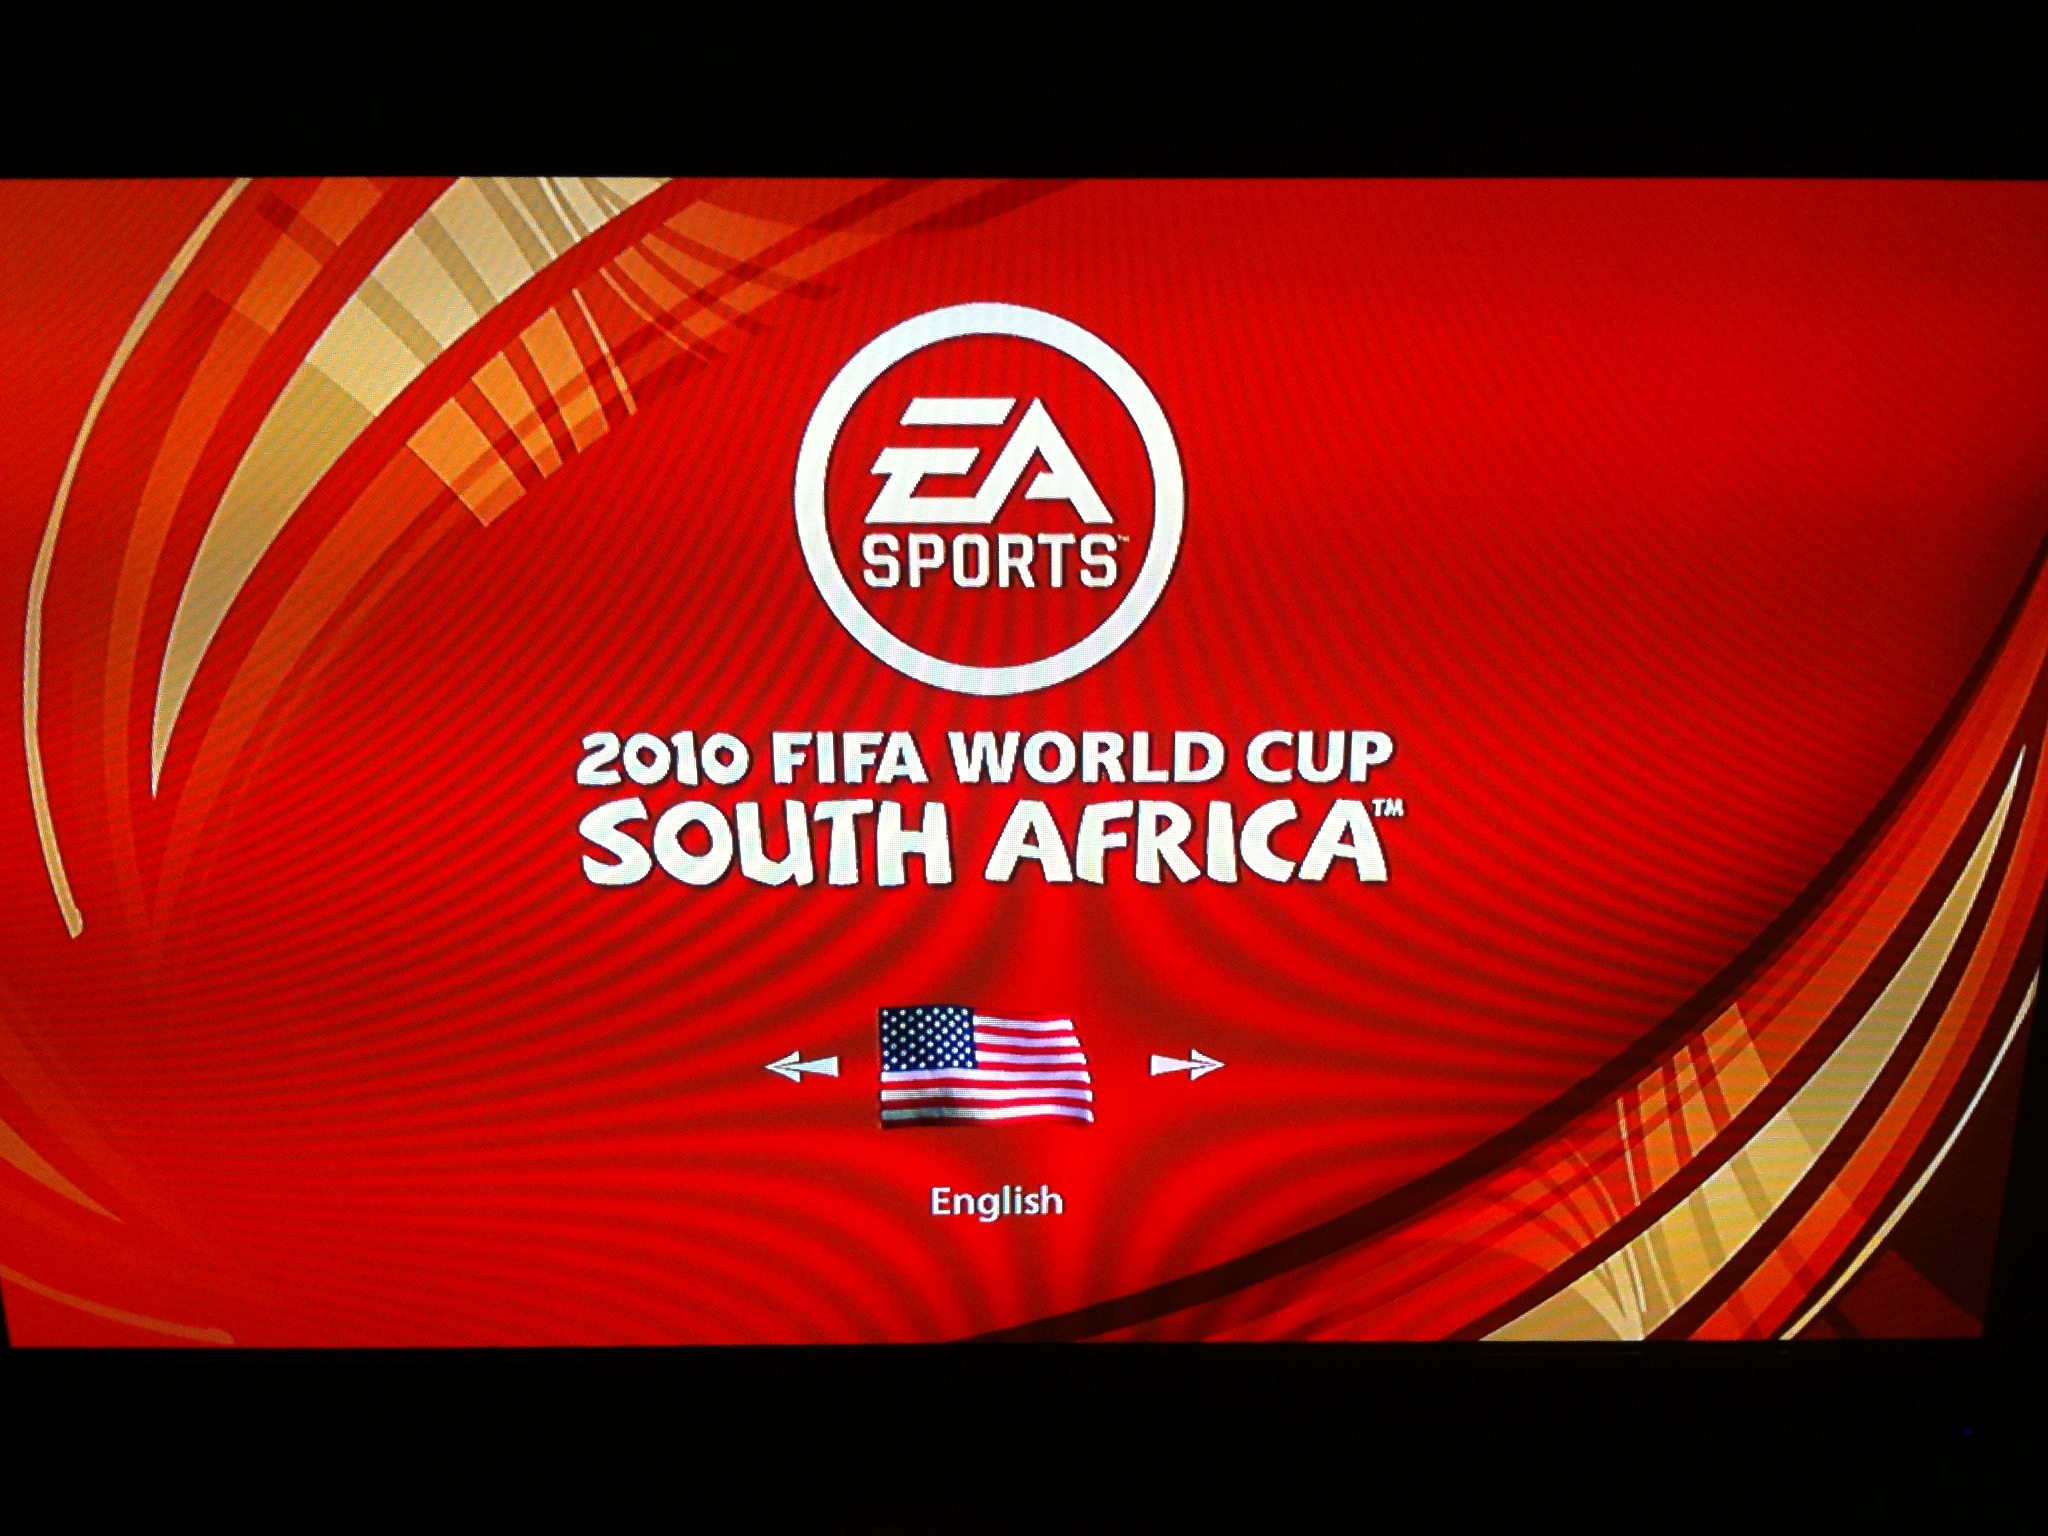 2010 fifa world cup south africa (wii) on dolphin wii/gc emulator.